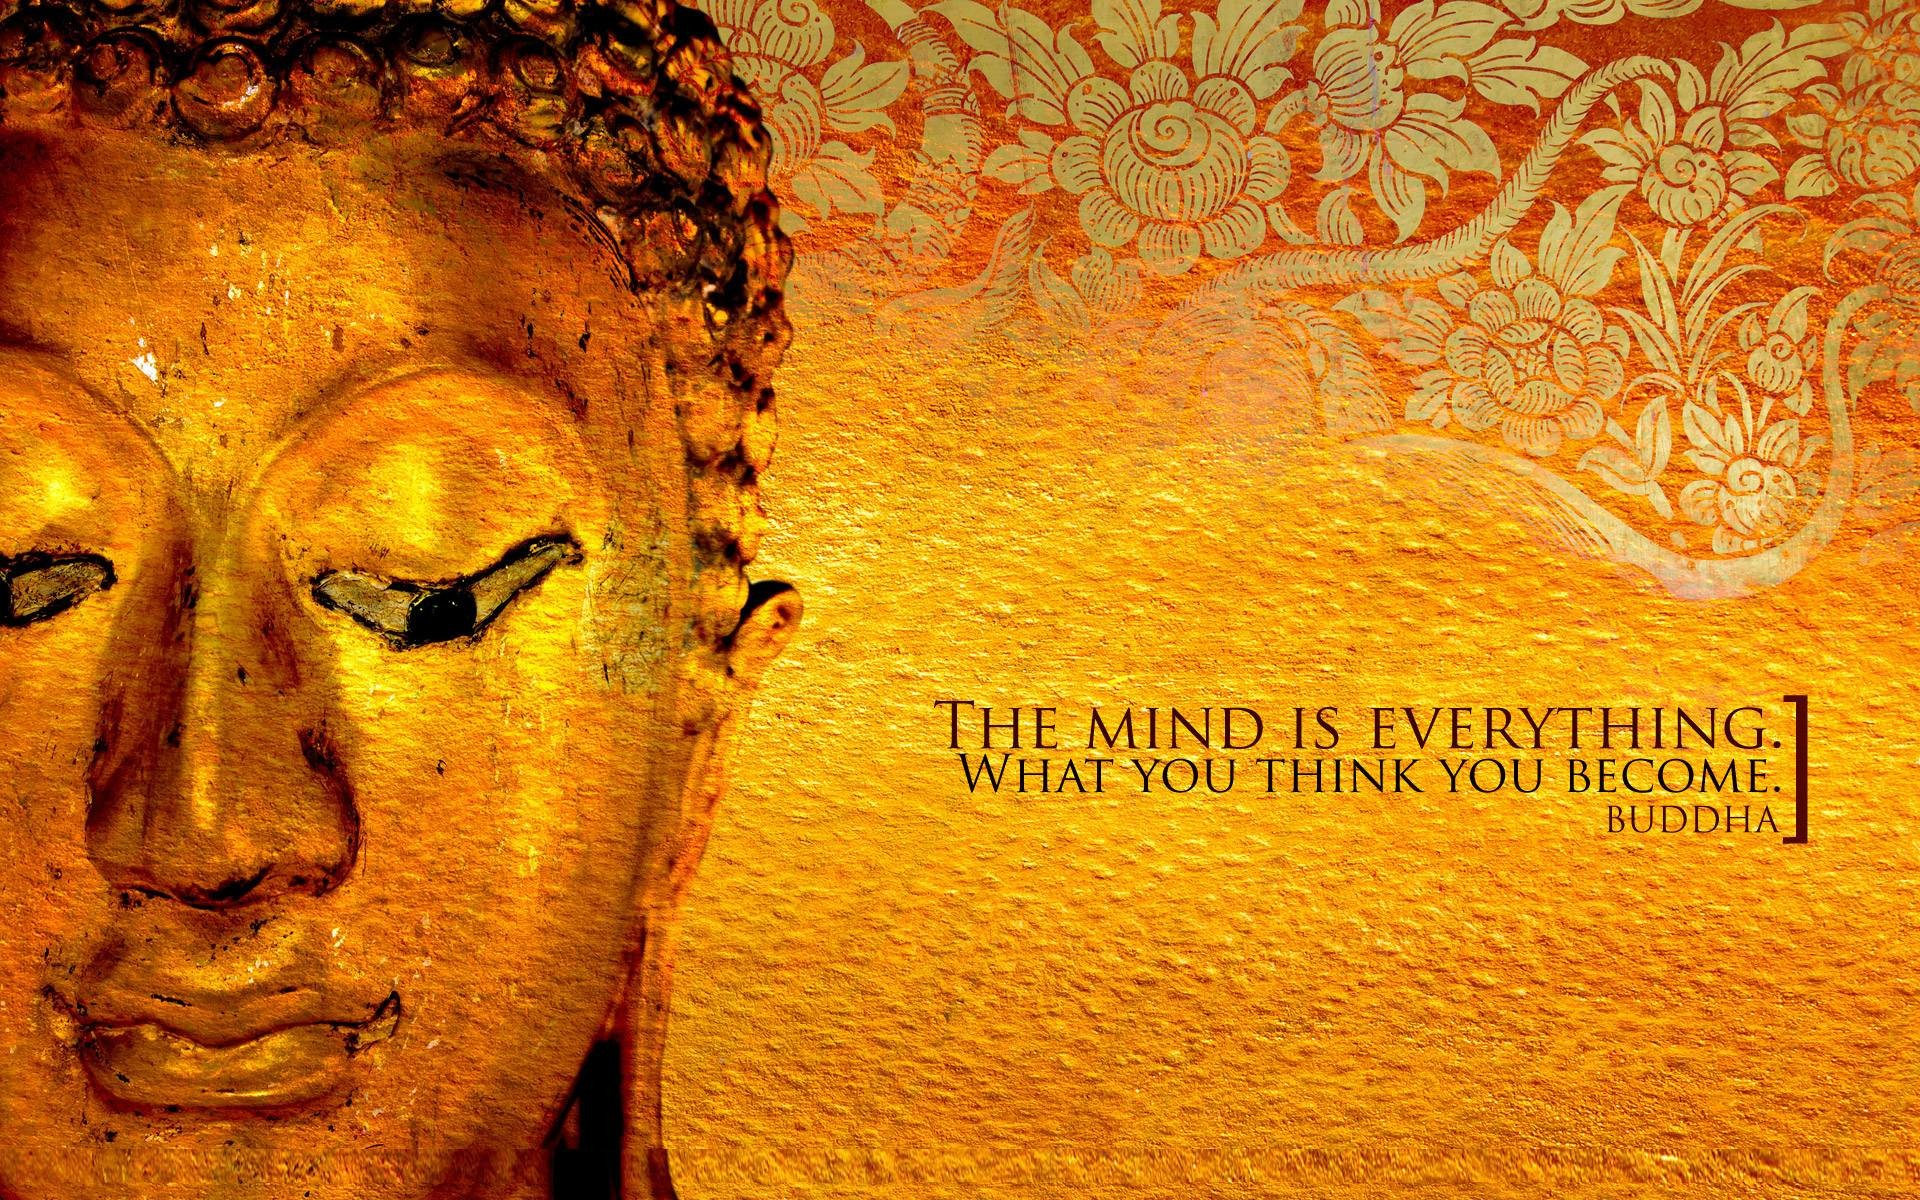 Monk Quotes Wallpaper Buddha Iphone Wallpaper 57 Images